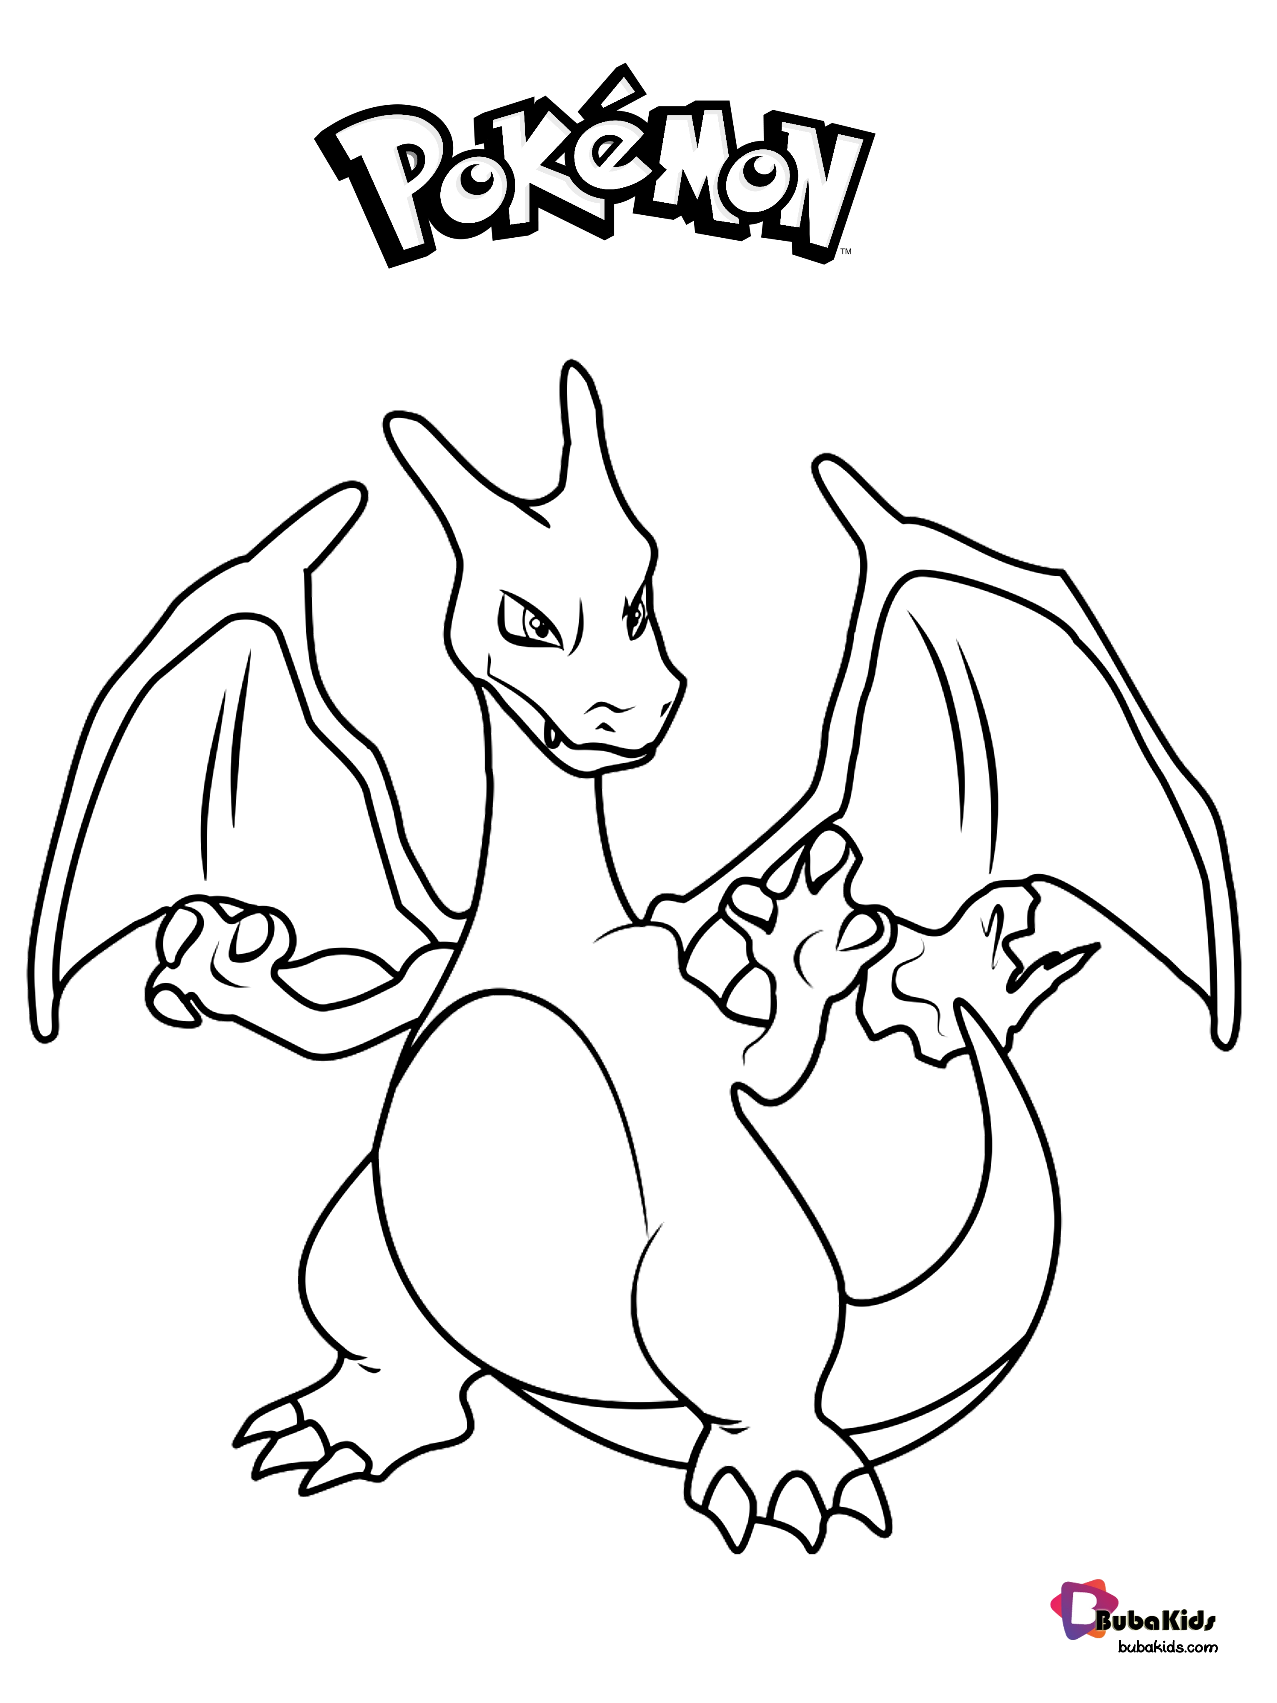 Pokemon Coloring Pages Charizard : pokemon, coloring, pages, charizard, Pokemon, Charizard, Coloring, Collection, Cartoon, Pages, Teenage, Printable…, Pages,